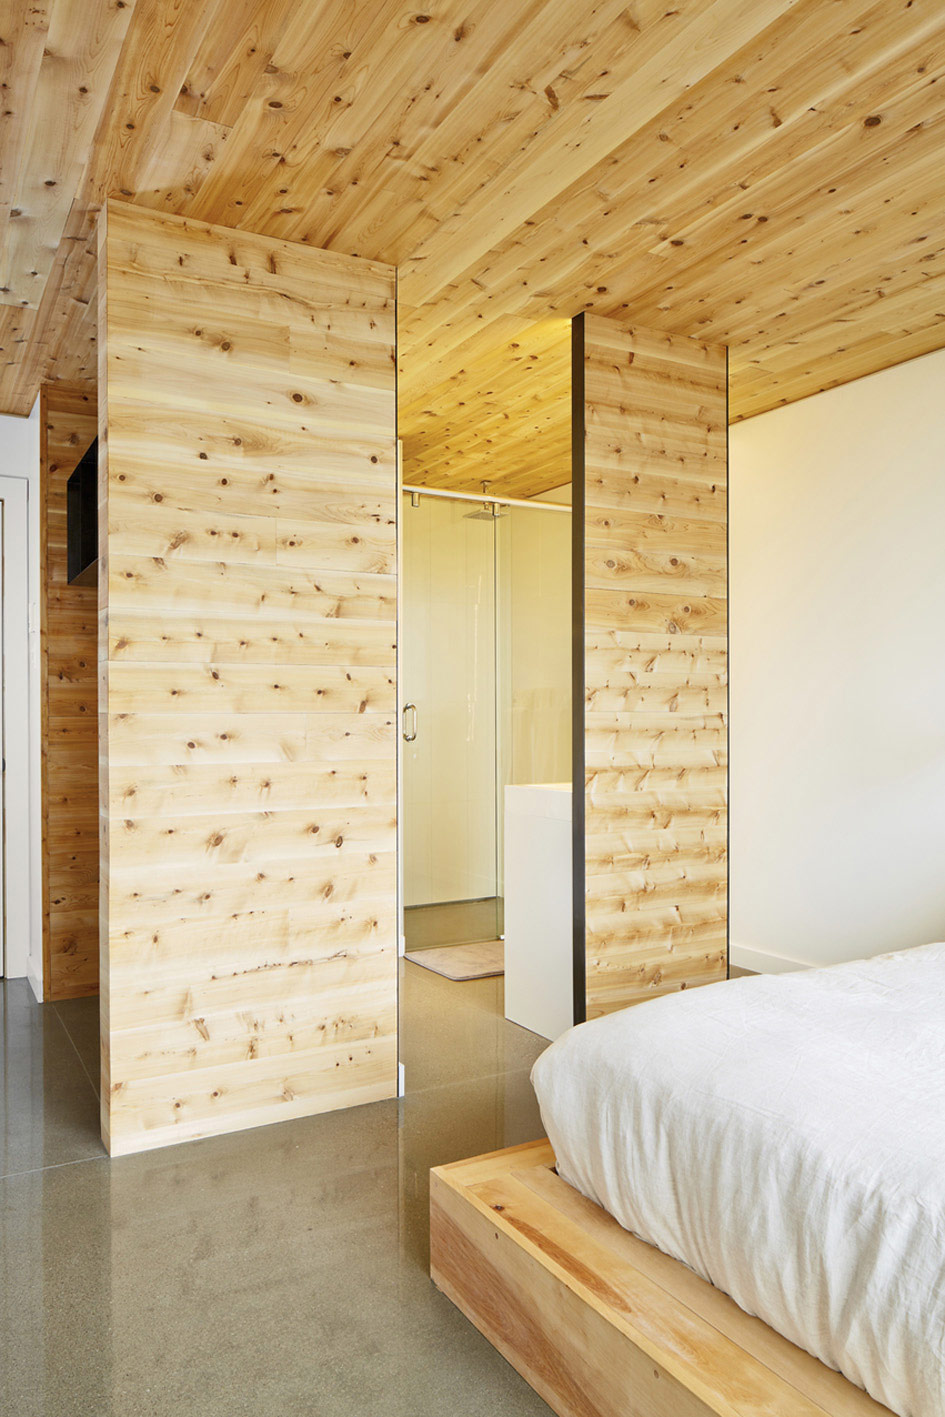 Bedroom, Bathroom, Malbaie VIII Residence in Charlevoix